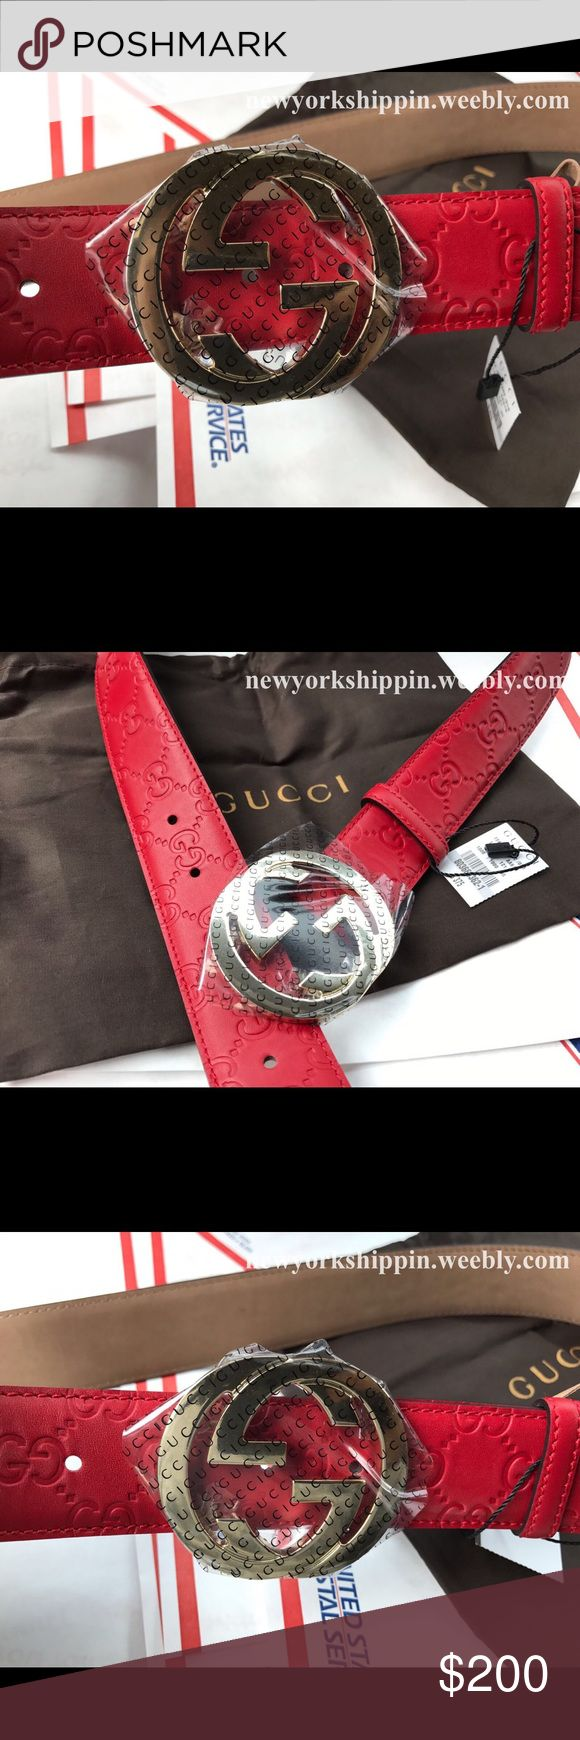 Official men's Red Gucci guccissima belt Red Gucci guccissima leather belt with gold interlocking g buckle. Comes with original box, dust bag and tag. Visit website to purchase. $99.99 including priority shipping. 1-3 days delivery. Gucci Accessories Belts